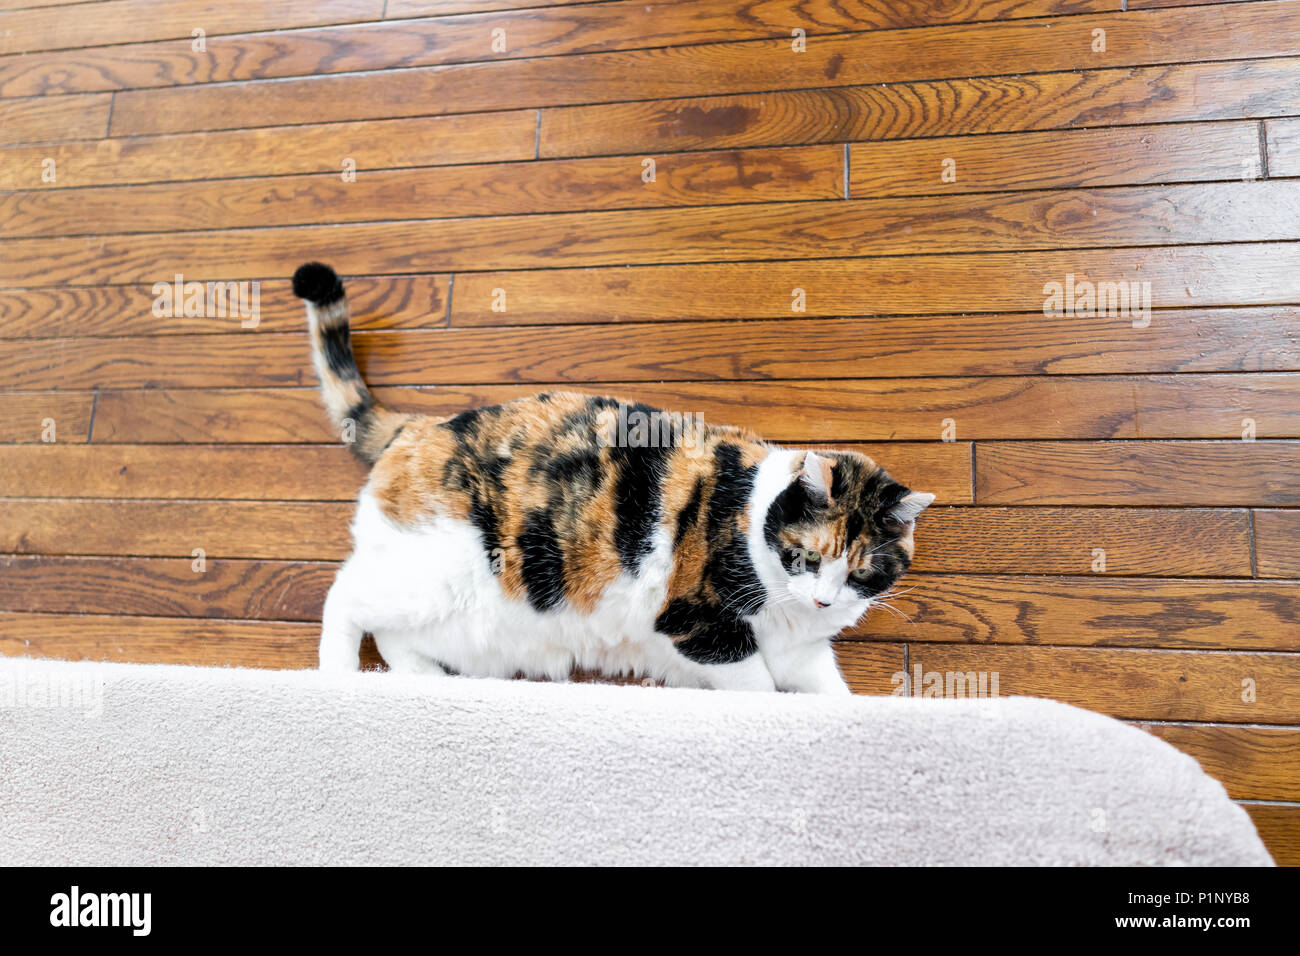 Flat Top View Down Of Calico Cat Scratching Nails On Carpet Wooden Floor  Steps Stairs Staircase Inside Indoor House, Home, Destroying It